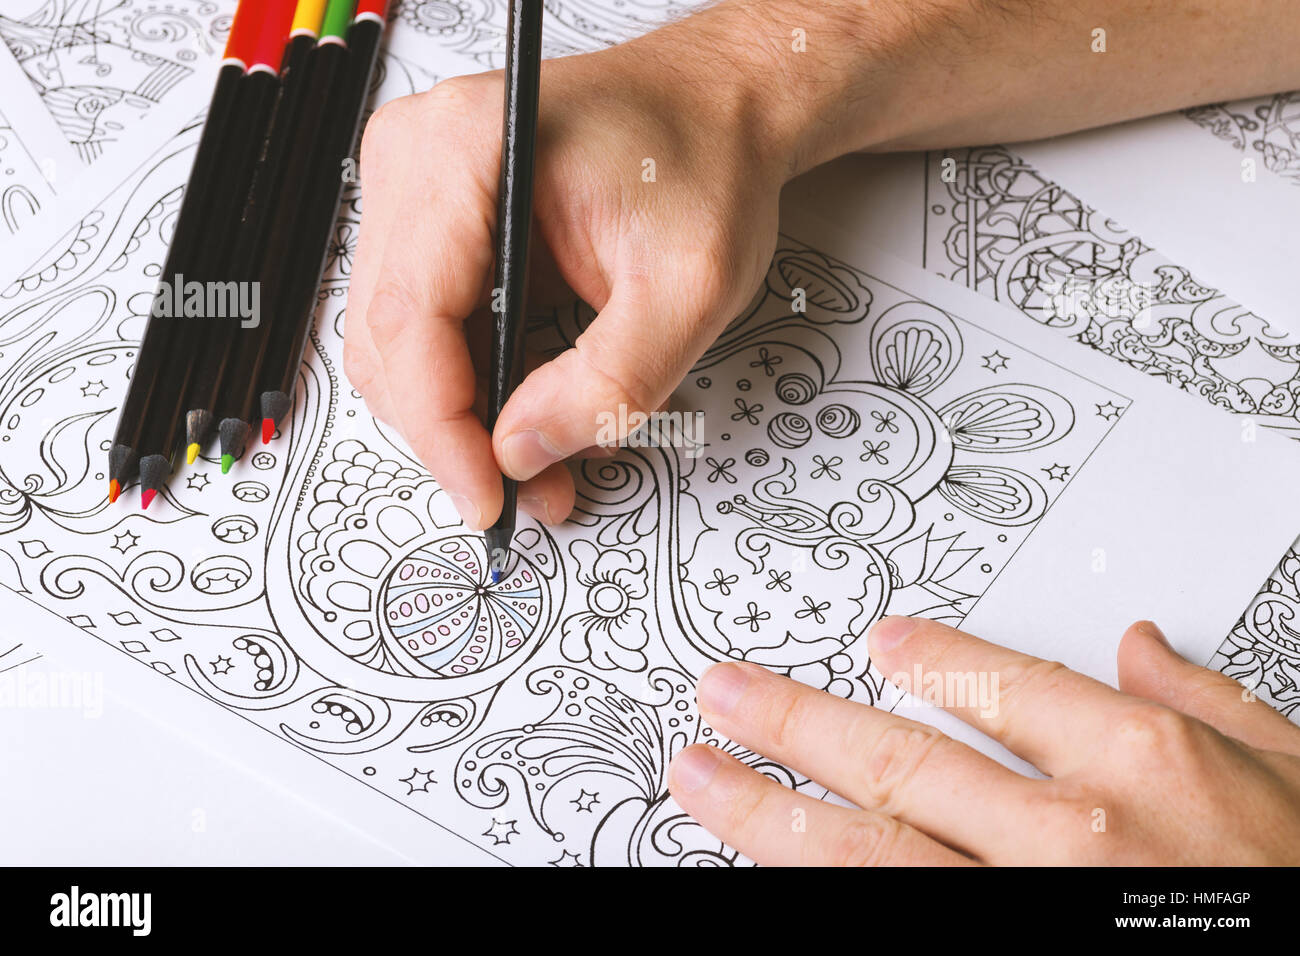 Coloring Pages For Adults Is Zen And Antistress Tool Hobby That Help You Relax